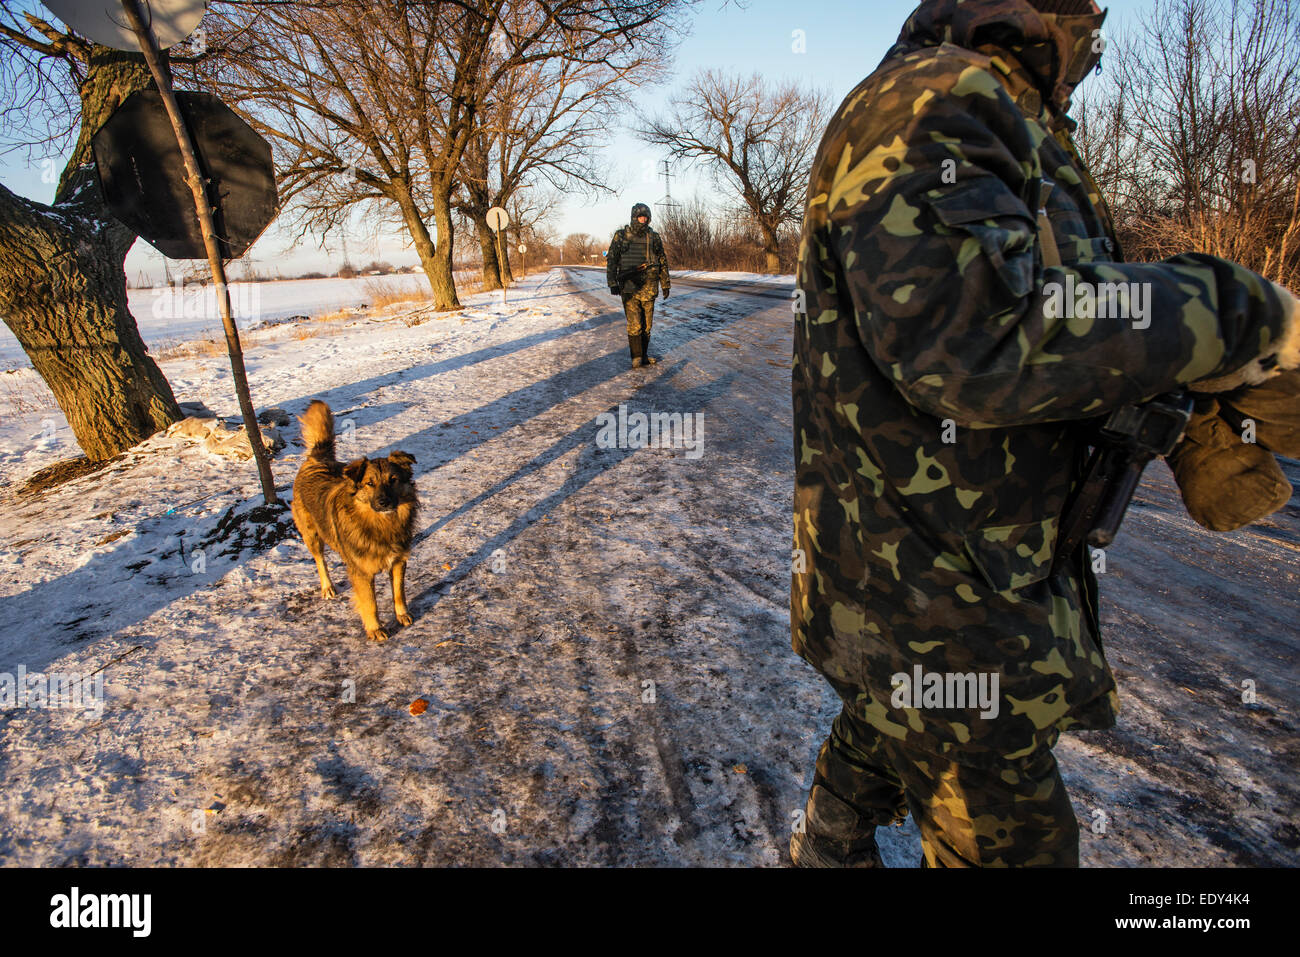 Hotels for animals in Donetsk region: a selection of sites